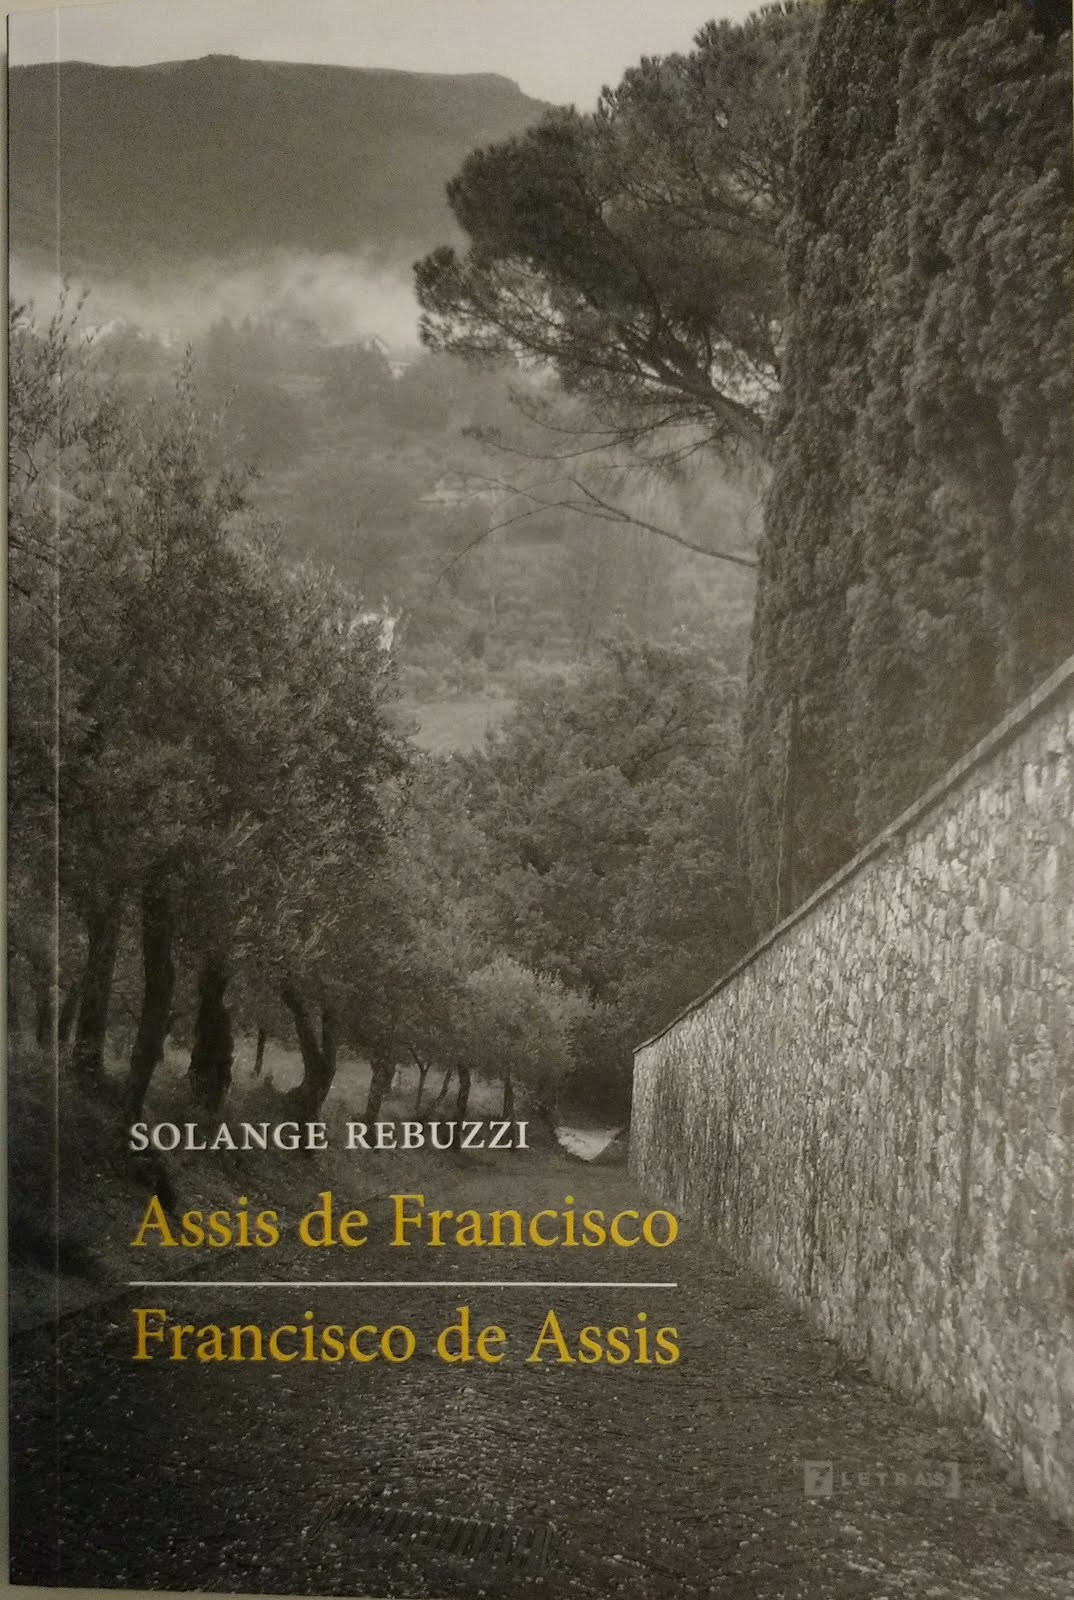 Assis de Francisco / Francisco de Assis